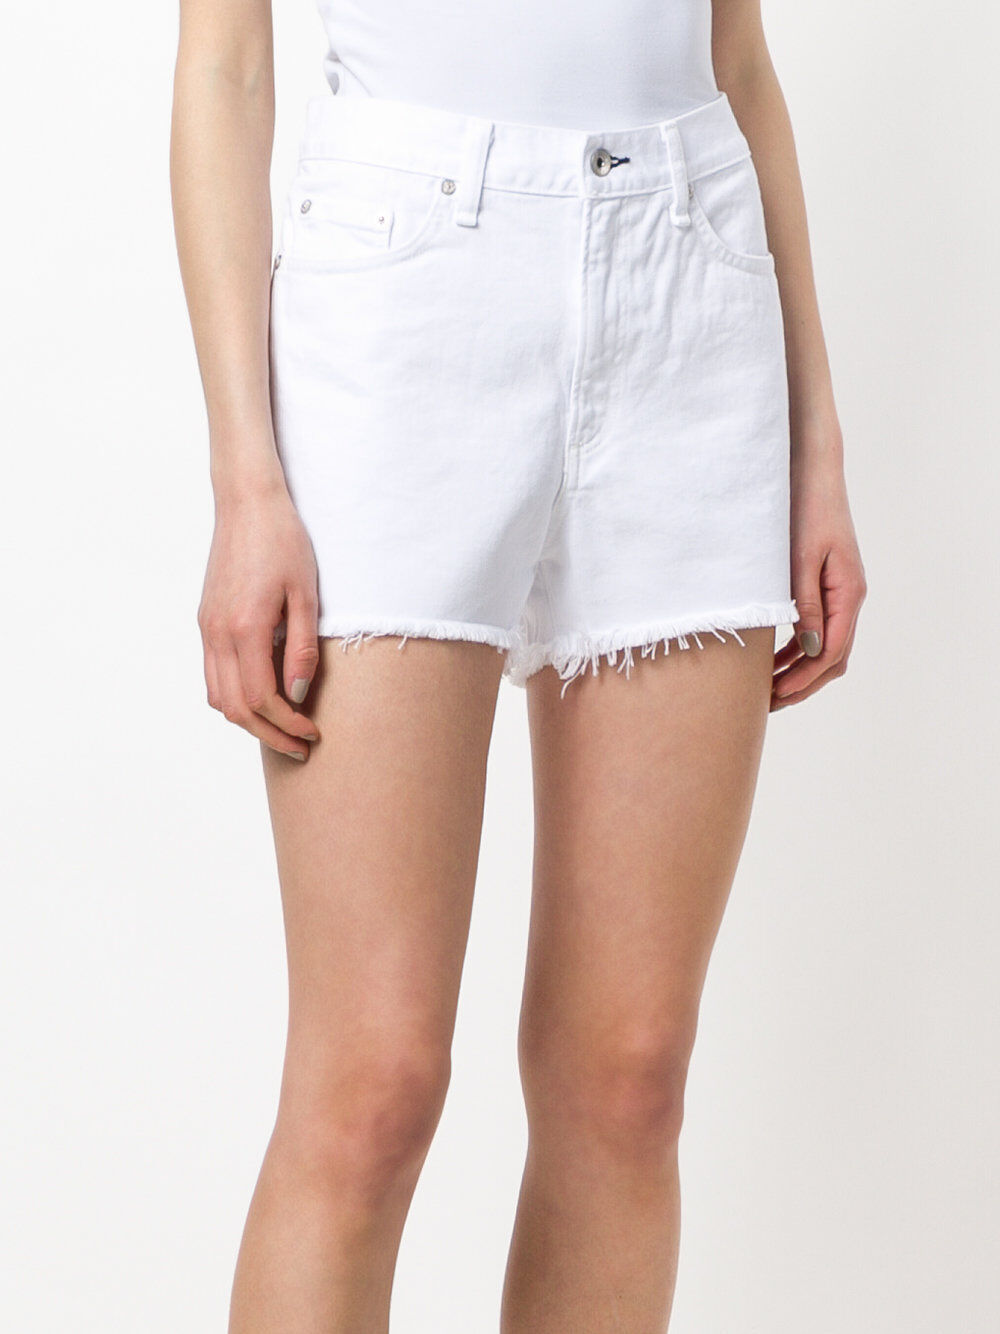 NWT Rag & Bone Women's Jean Shorts - Boyfriend In Aged Bright White SZ 31